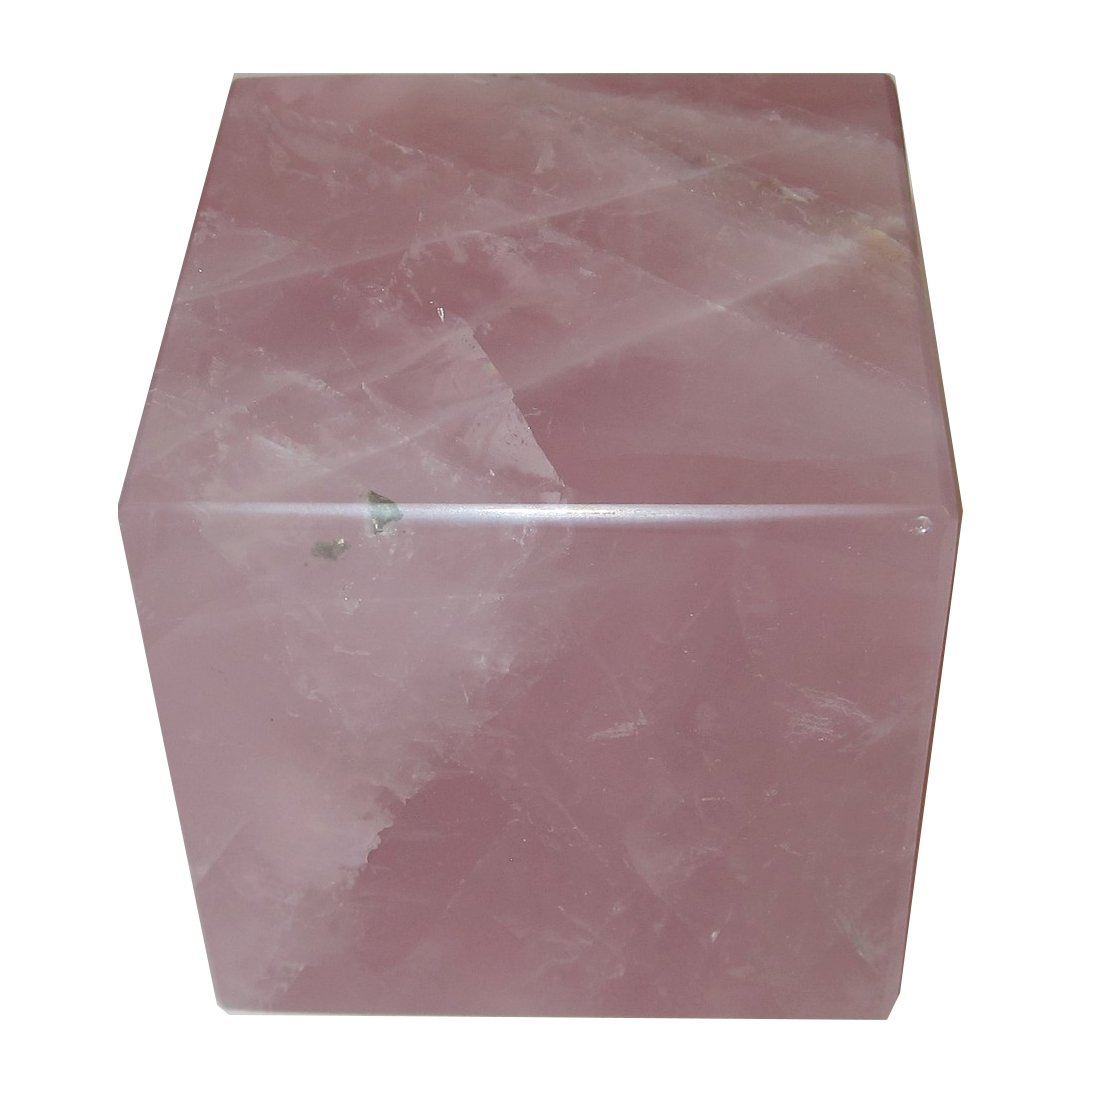 Rose Quartz Polygon 52 Big Hunk Chunk of Burning Love Crystal Pink Cube Block Square Stone 2.1'' (3.9'')